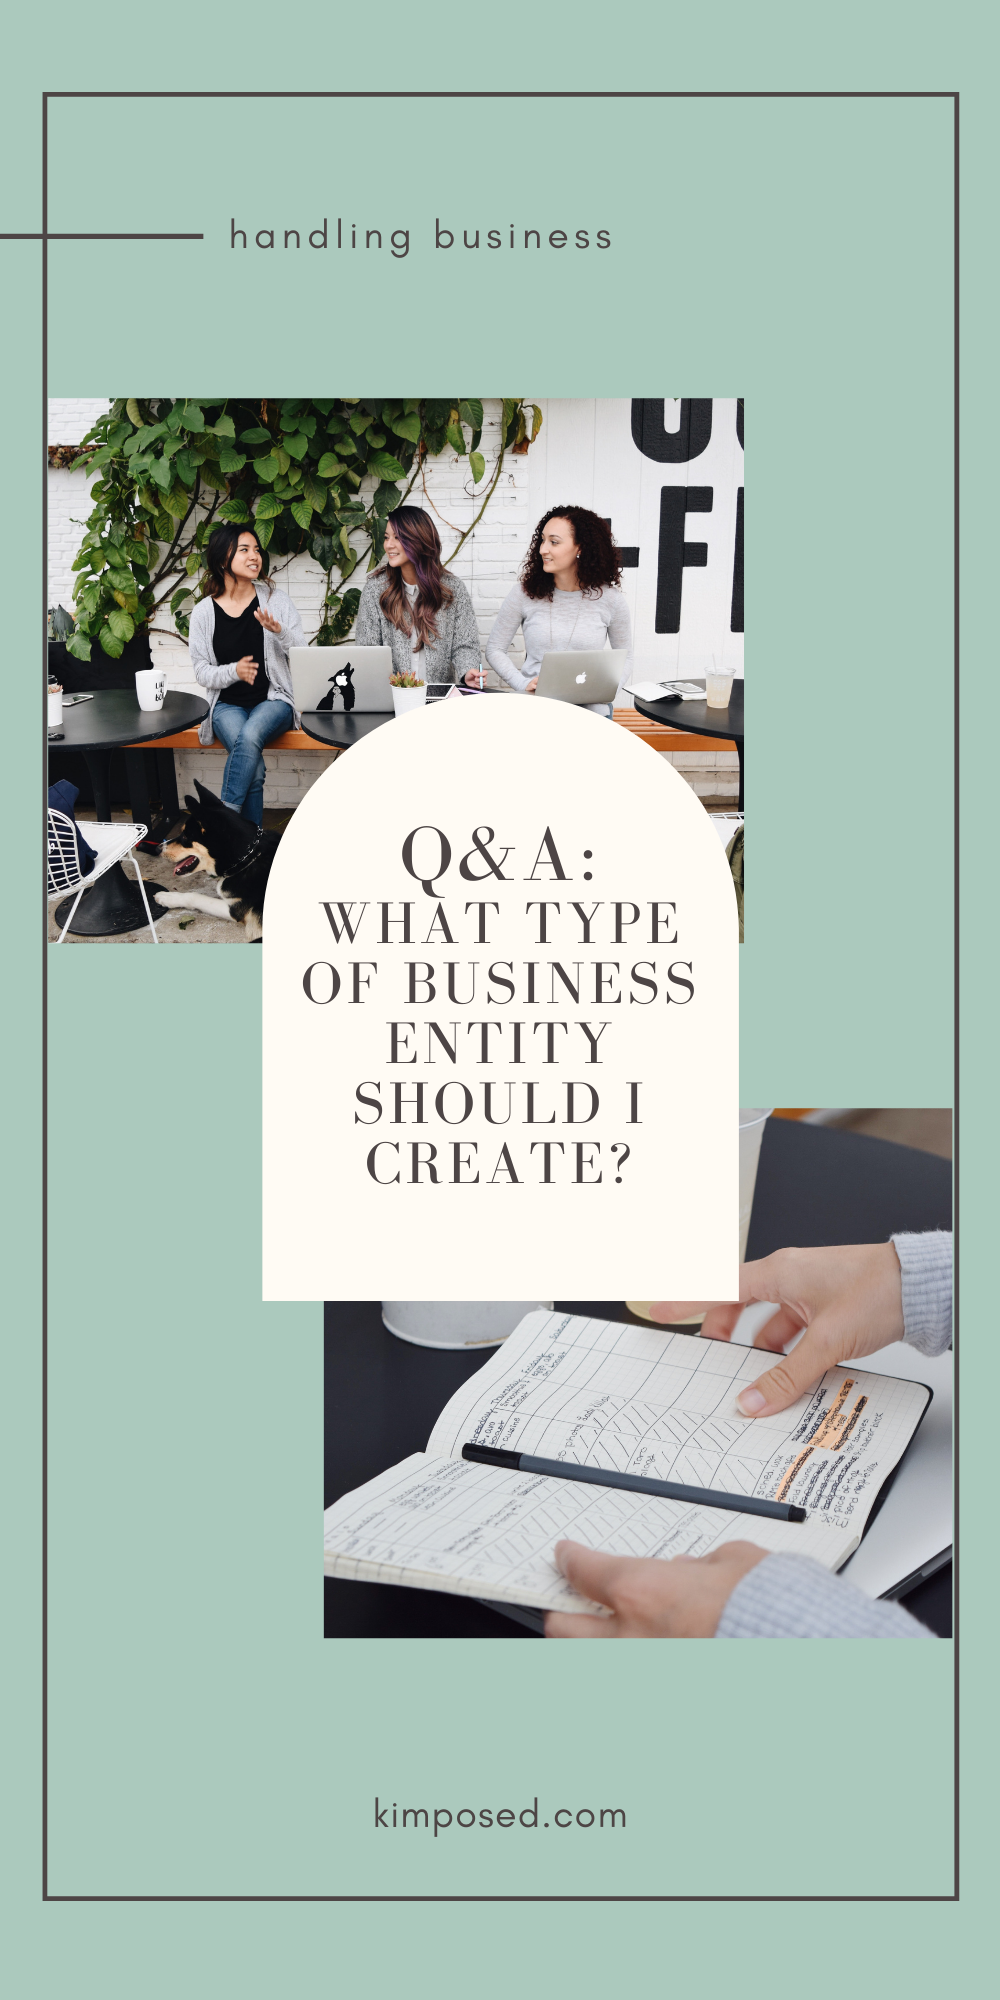 QA: What Type of Business Entity Should I Create?